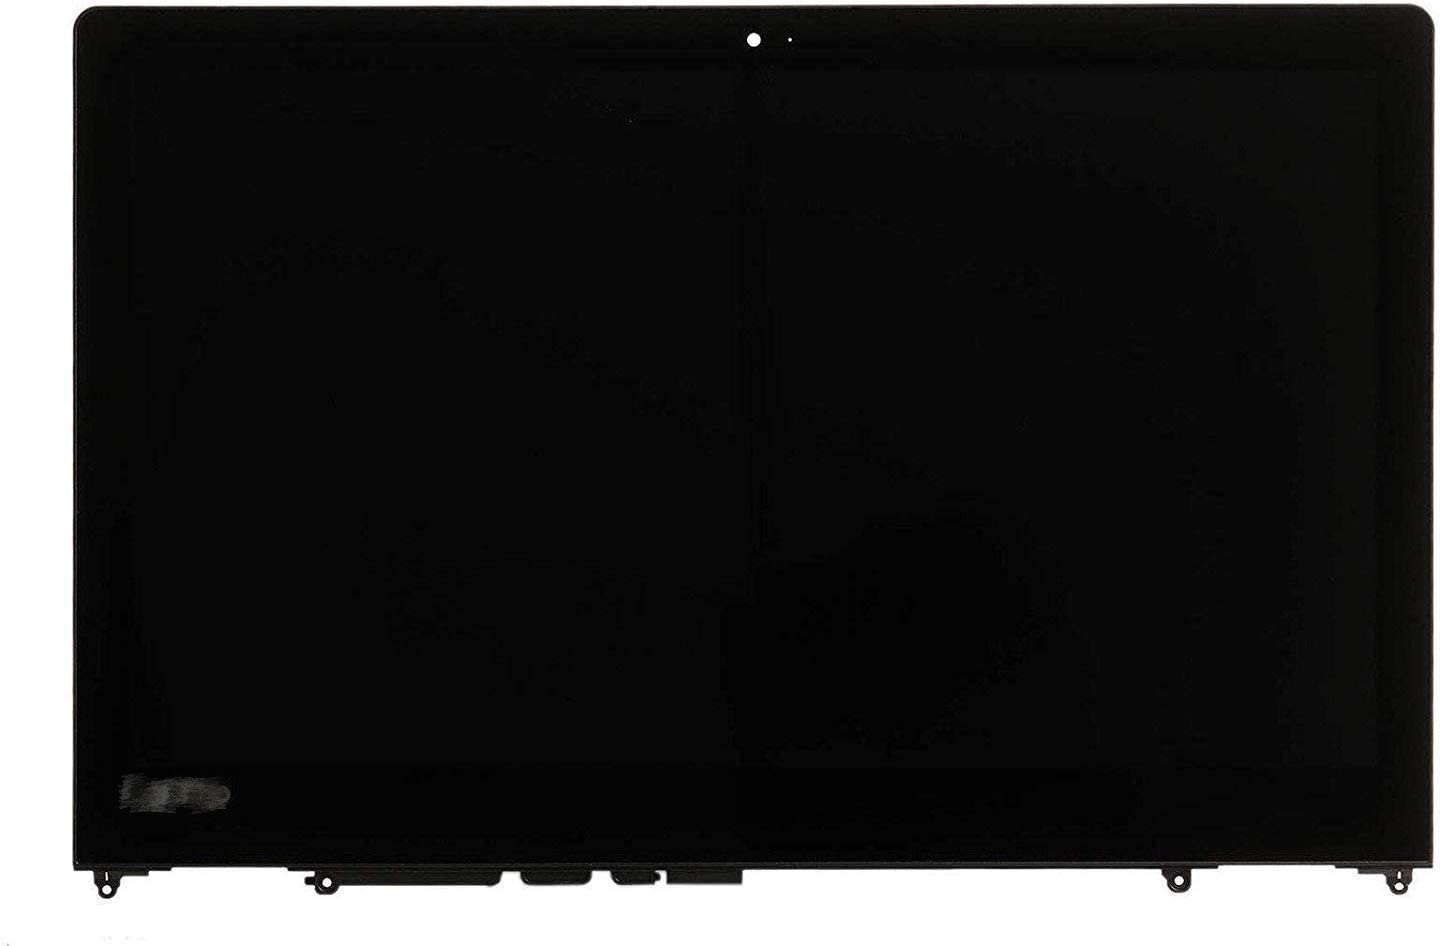 For Lenovo IdeaPad Flex 4-1580 1570 15.6 inch FHD IPS LCD Display Touch Digitizer Assembly